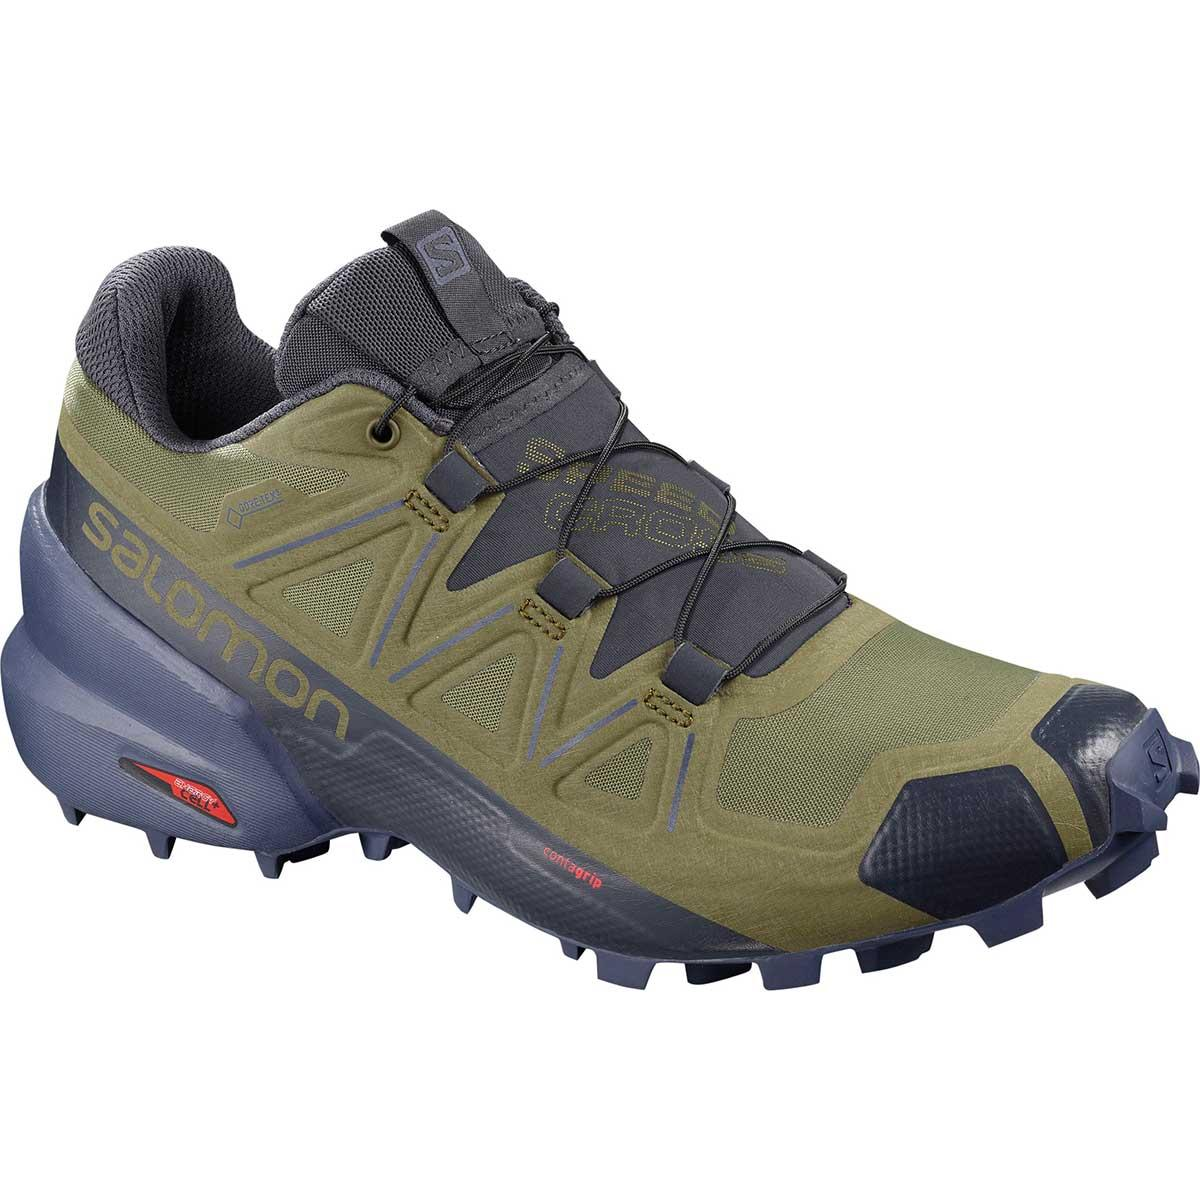 Salomon Speedcross 5 GTX W in Burnt Olive and Crown Blue